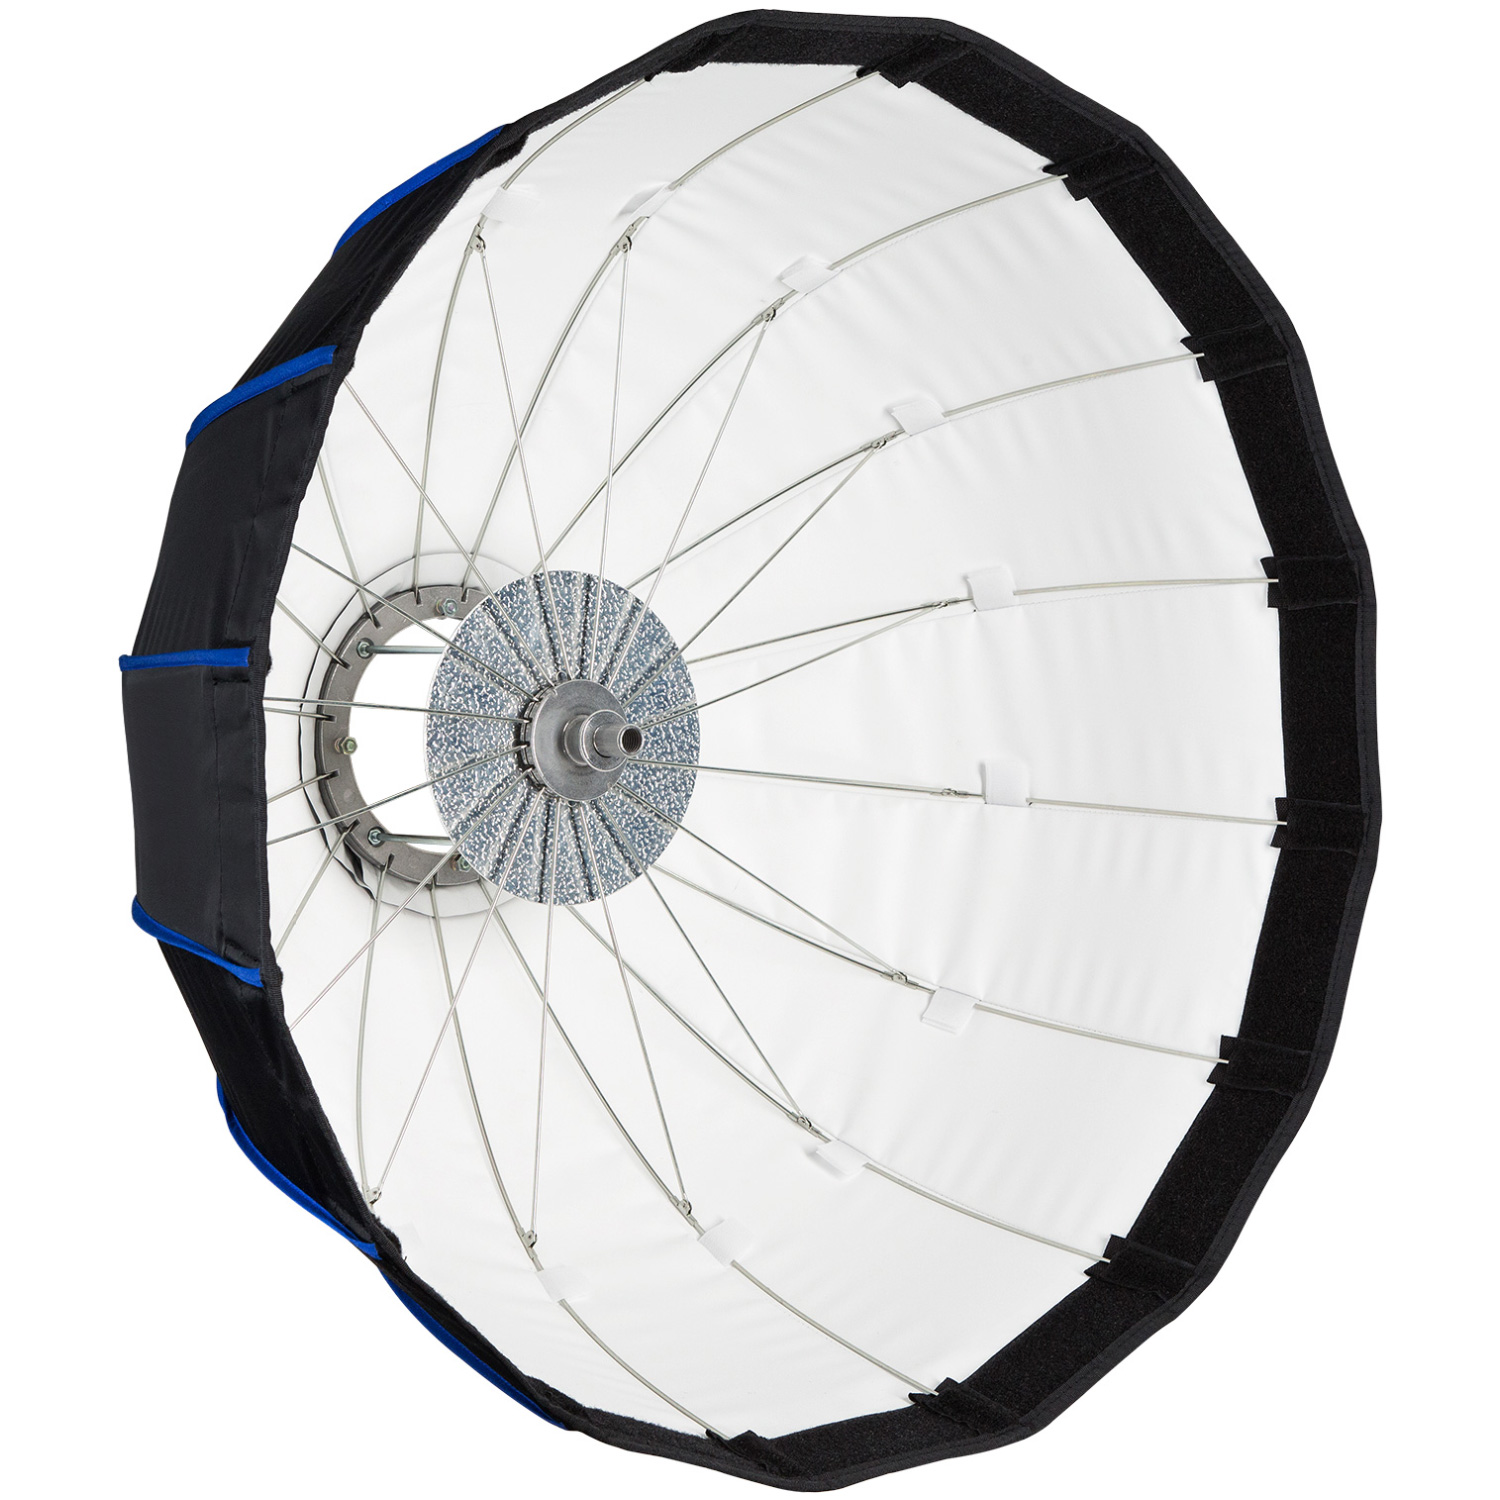 Collapsible Beauty Dish (24-in., Profoto Mount)